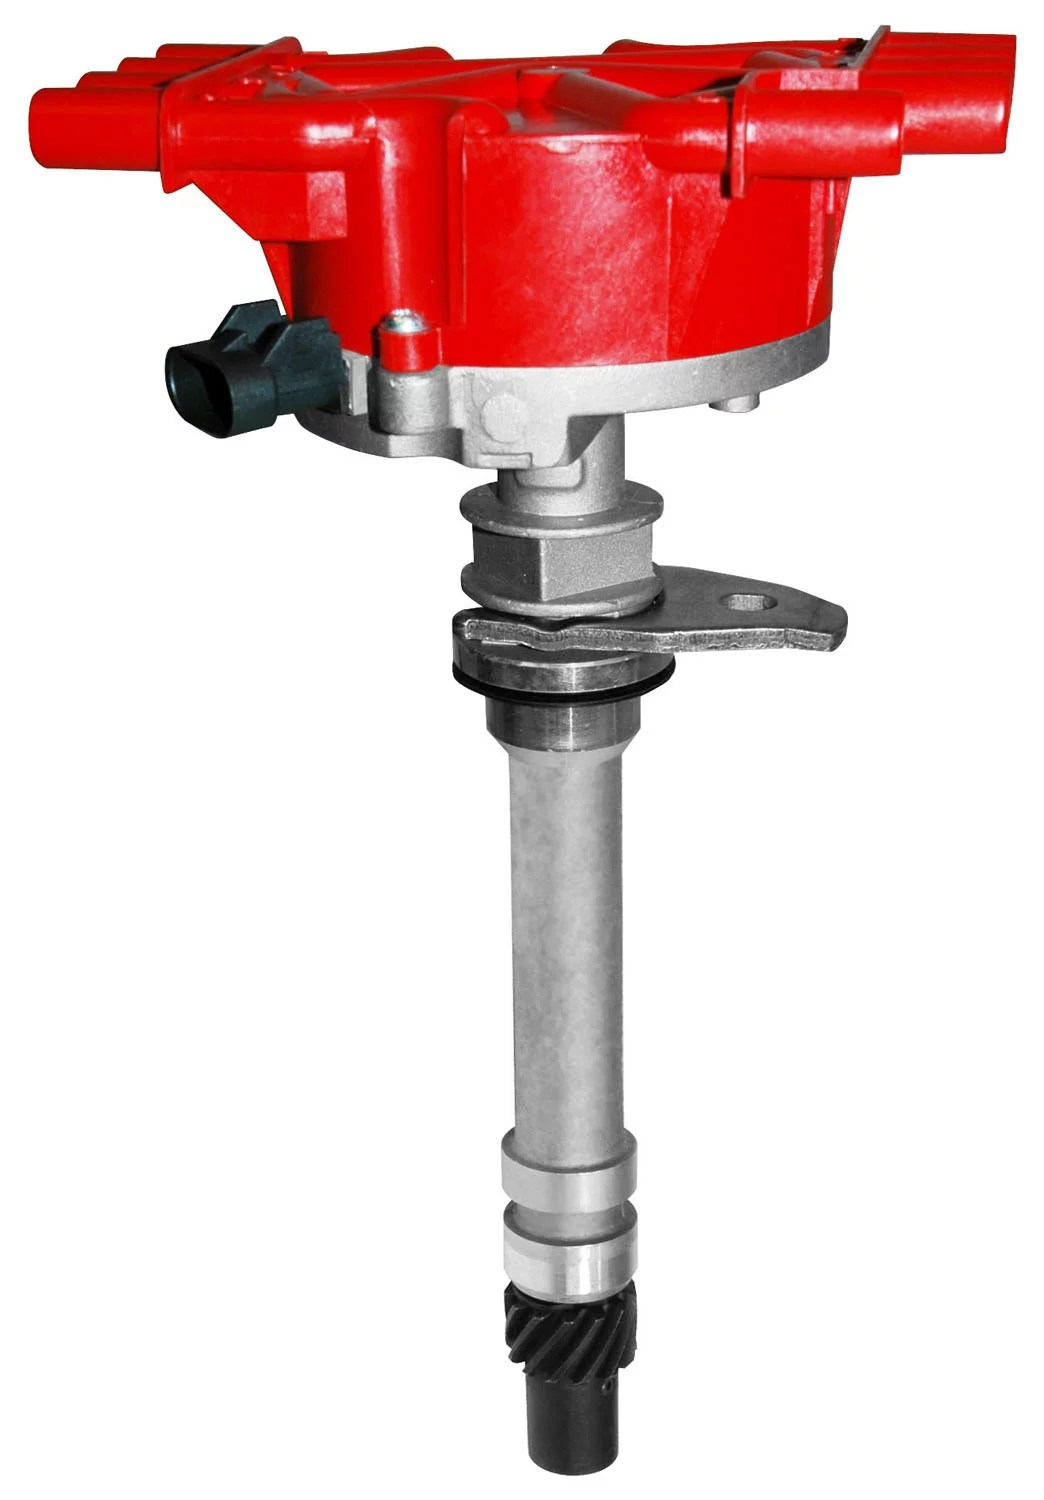 small resolution of msd ignition 5592 distributor street fire for use with gm vortec engines without ignition control module magnetic trigger locked out timing